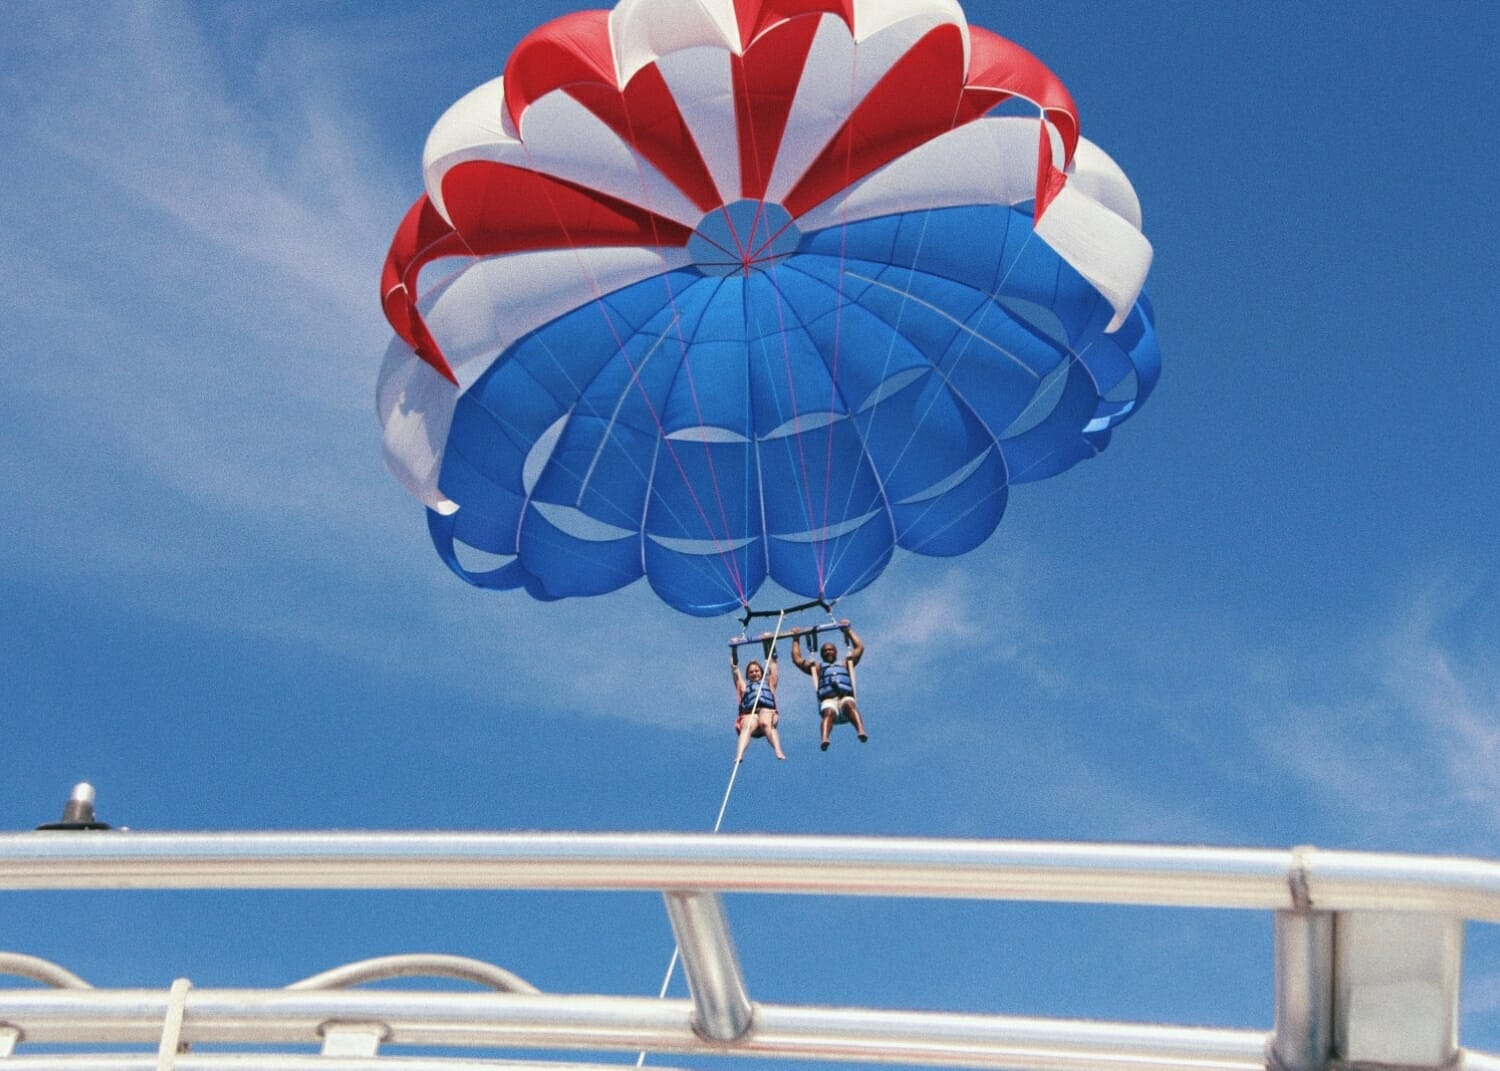 Parasailing couple flying in the sky